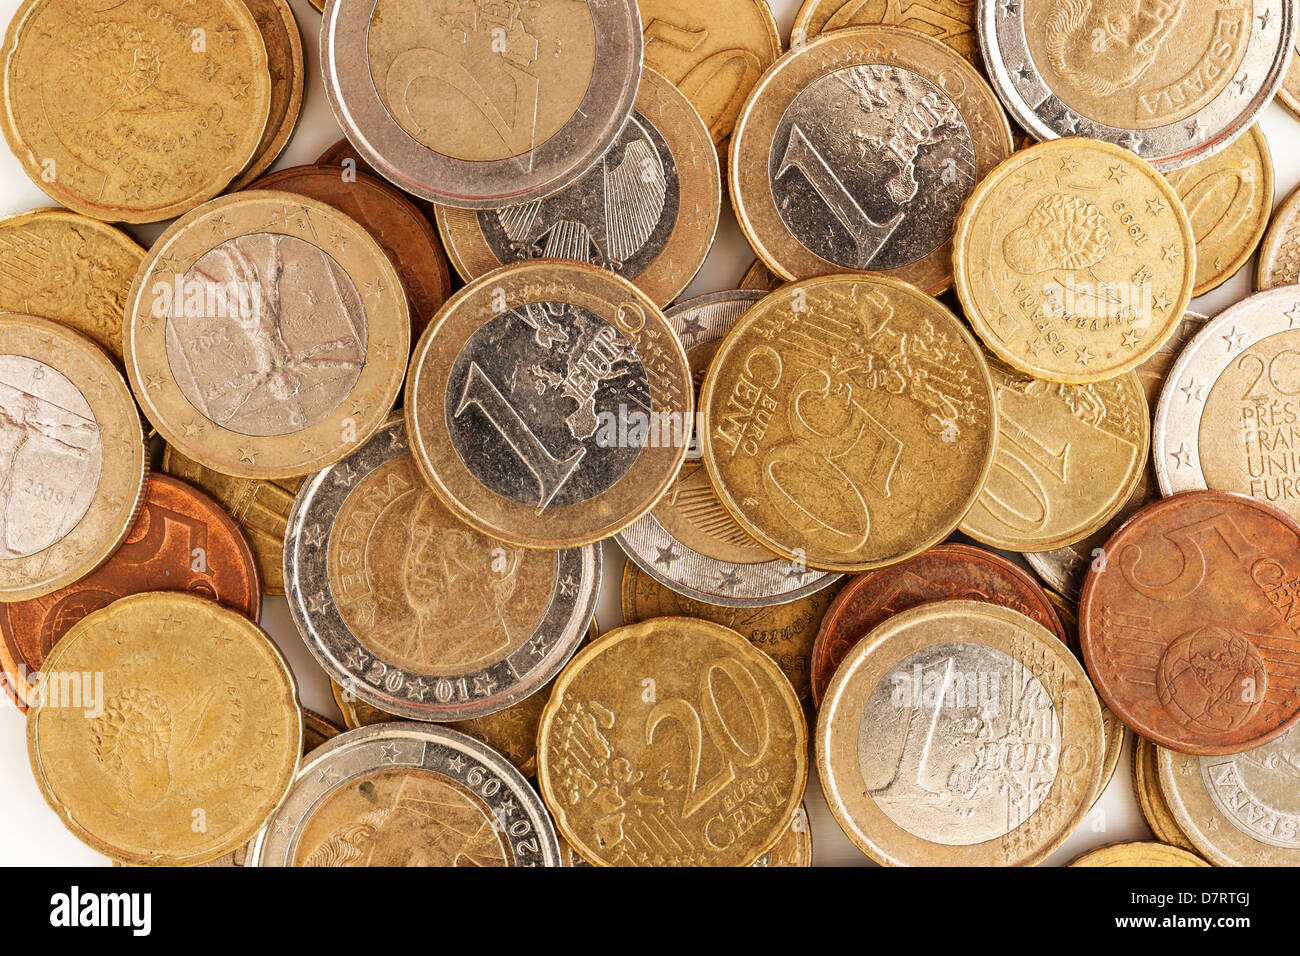 Mixed Spanish coins including euros and cents - Stock Image